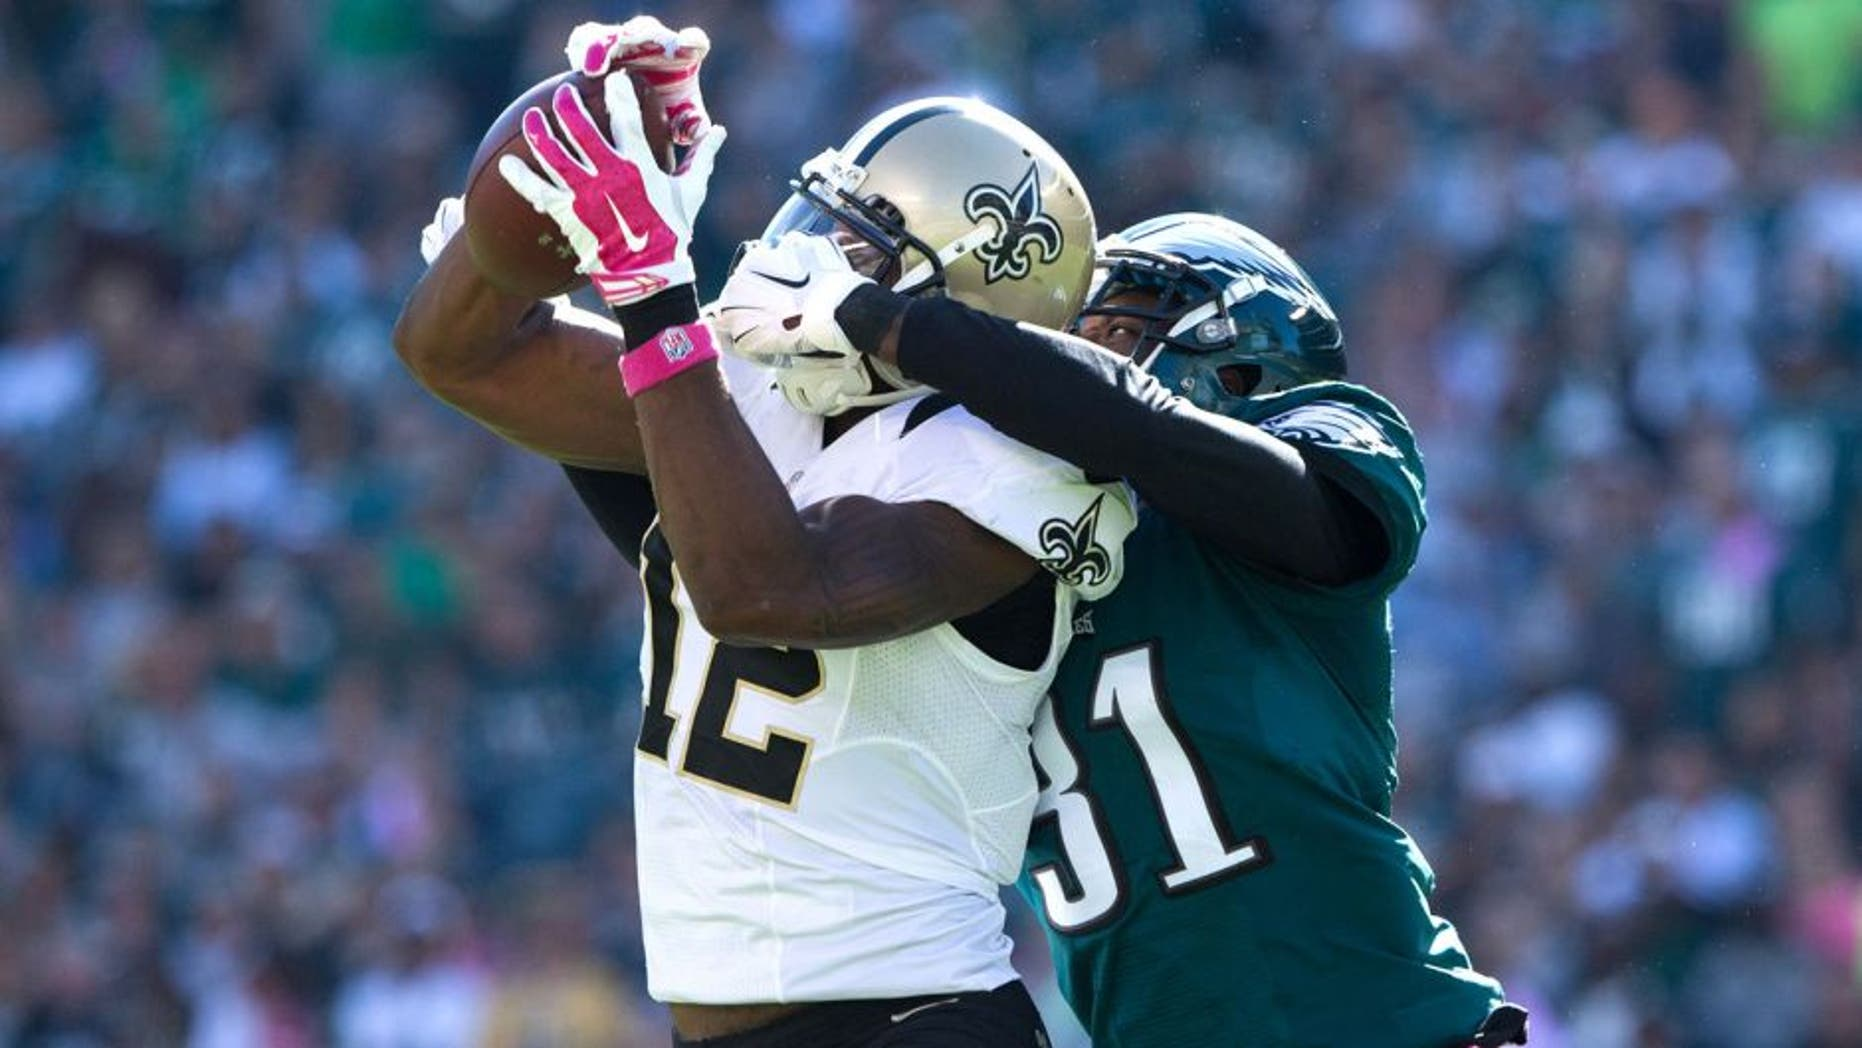 Oct 11, 2015; Philadelphia, PA, USA; New Orleans Saints wide receiver Marques Colston (12) makes a catch against the defense of Philadelphia Eagles cornerback Byron Maxwell (31) during the third quarter at Lincoln Financial Field. Mandatory Credit: Bill Streicher-USA TODAY Sports